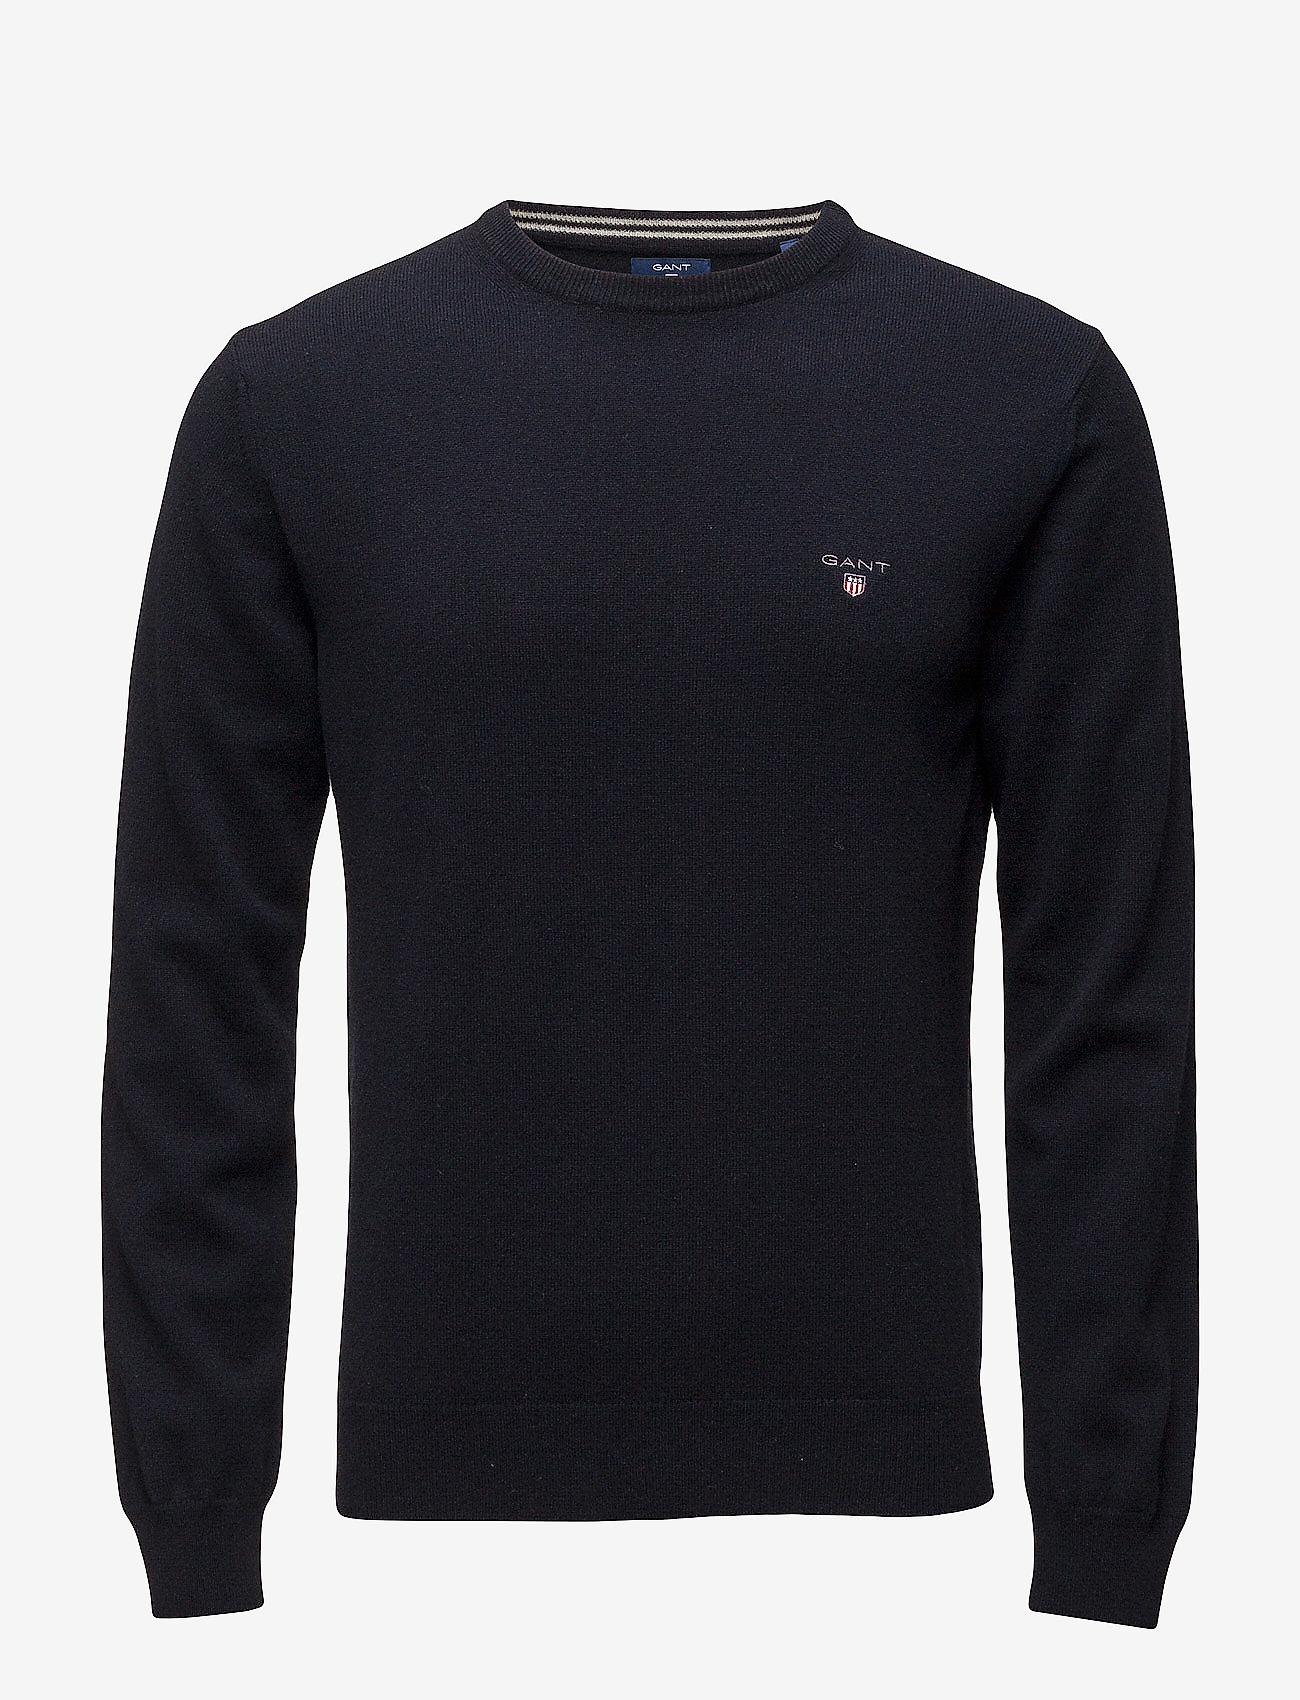 GANT - SUPERFINE LAMBSWOOL CREW - basic knitwear - marine - 0